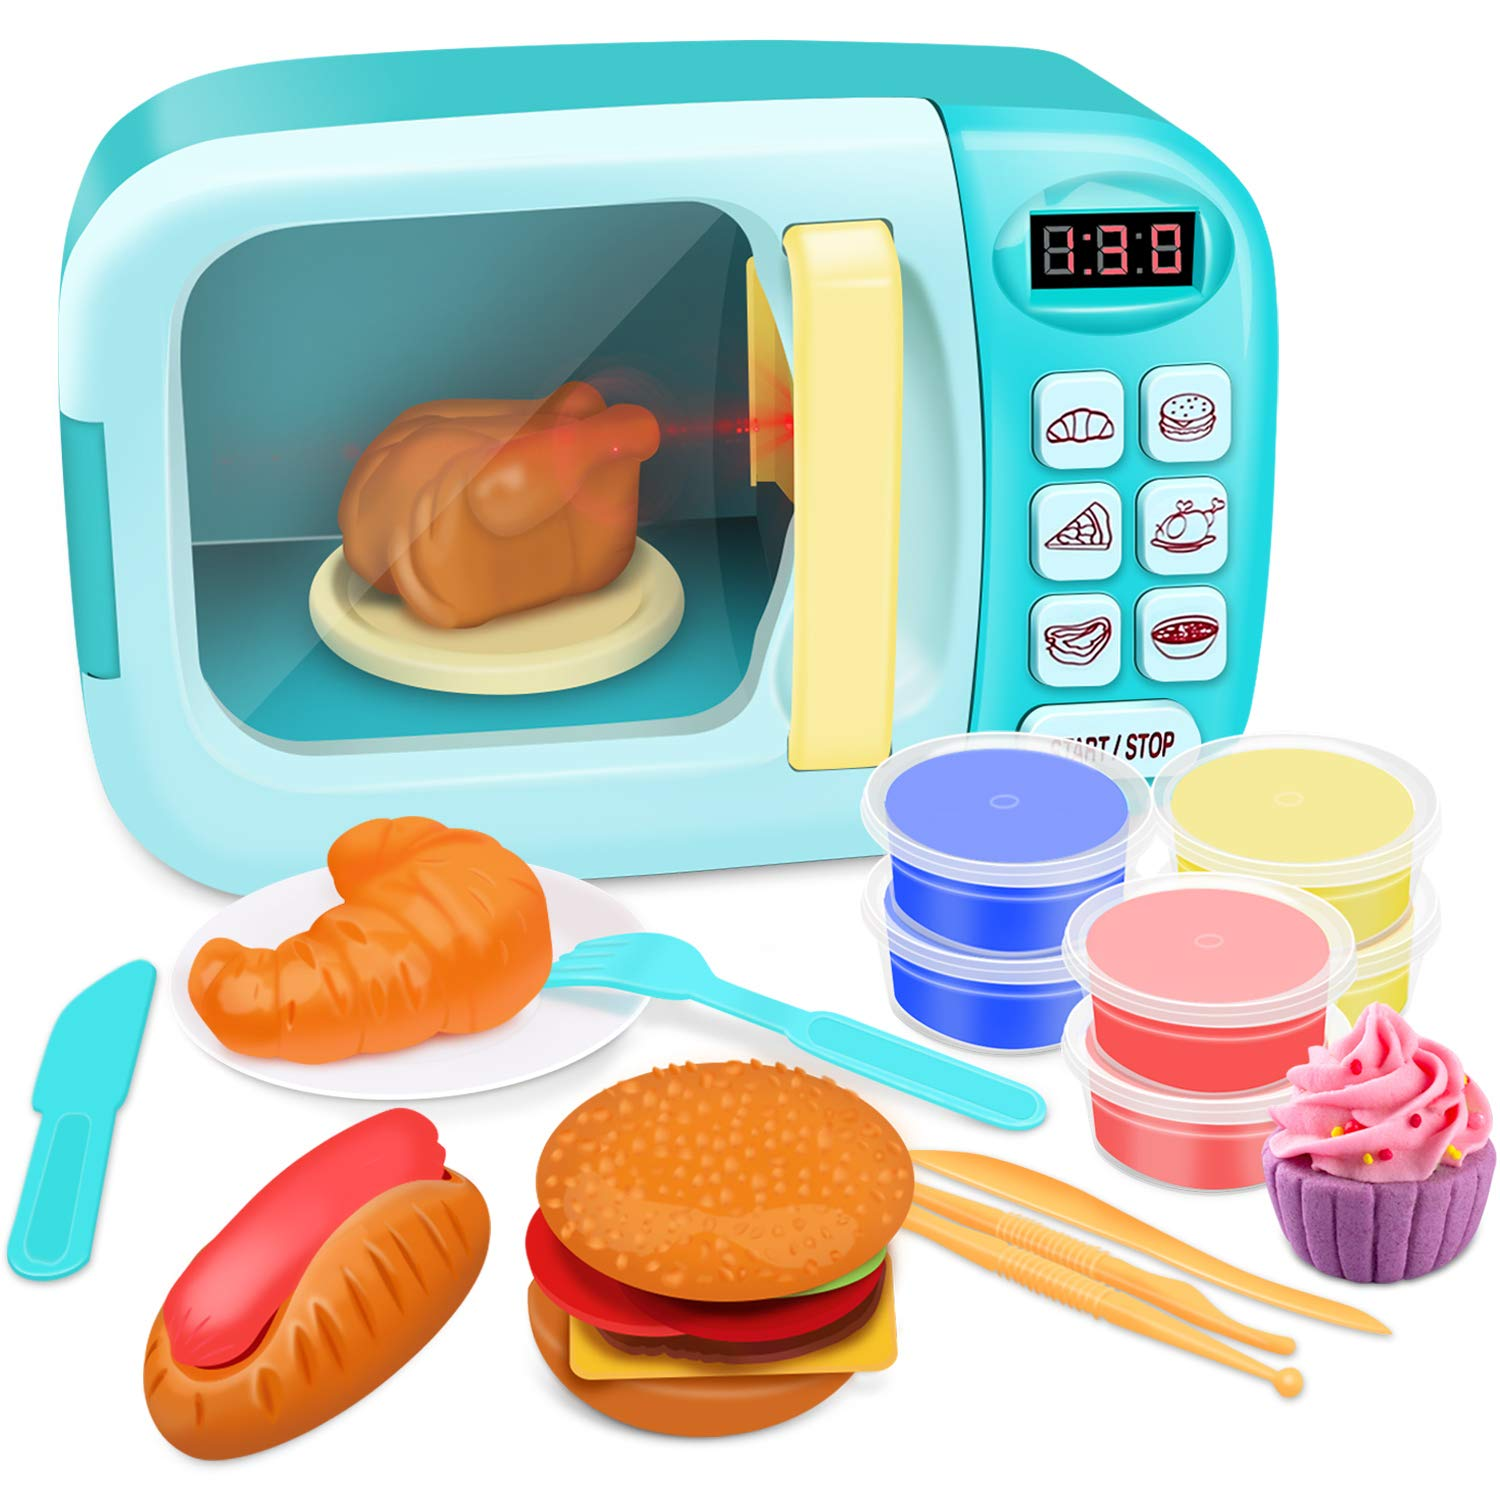 GrowthPic Toy Kitchen Microwave Play Set, Kids Electronic Pretend Play Oven Toy Set with Play Food and Play Dough for Toddler Boys Girls and 2 3 4 5 6 Years Old by GrowthPic